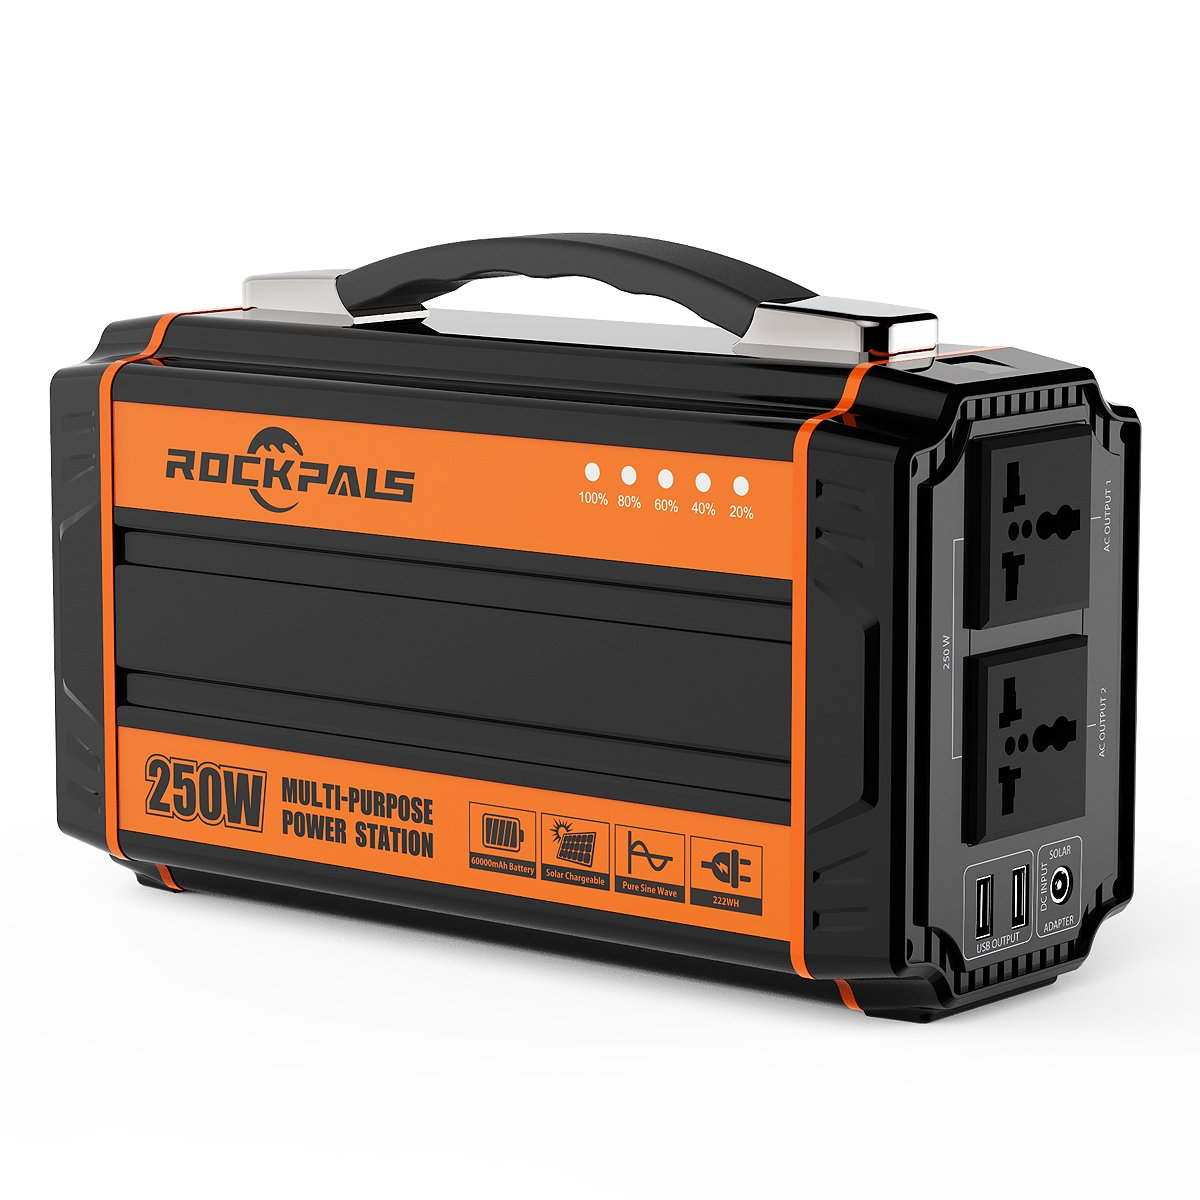 Rockpals 250-Watt Portable Generator Rechargeable Lithium Battery Pack Solar Generator with 110V AC Outlet, 12V Car, USB Output Off-grid Power Supply for CPAP Backup Camping Emergency by Rockpals